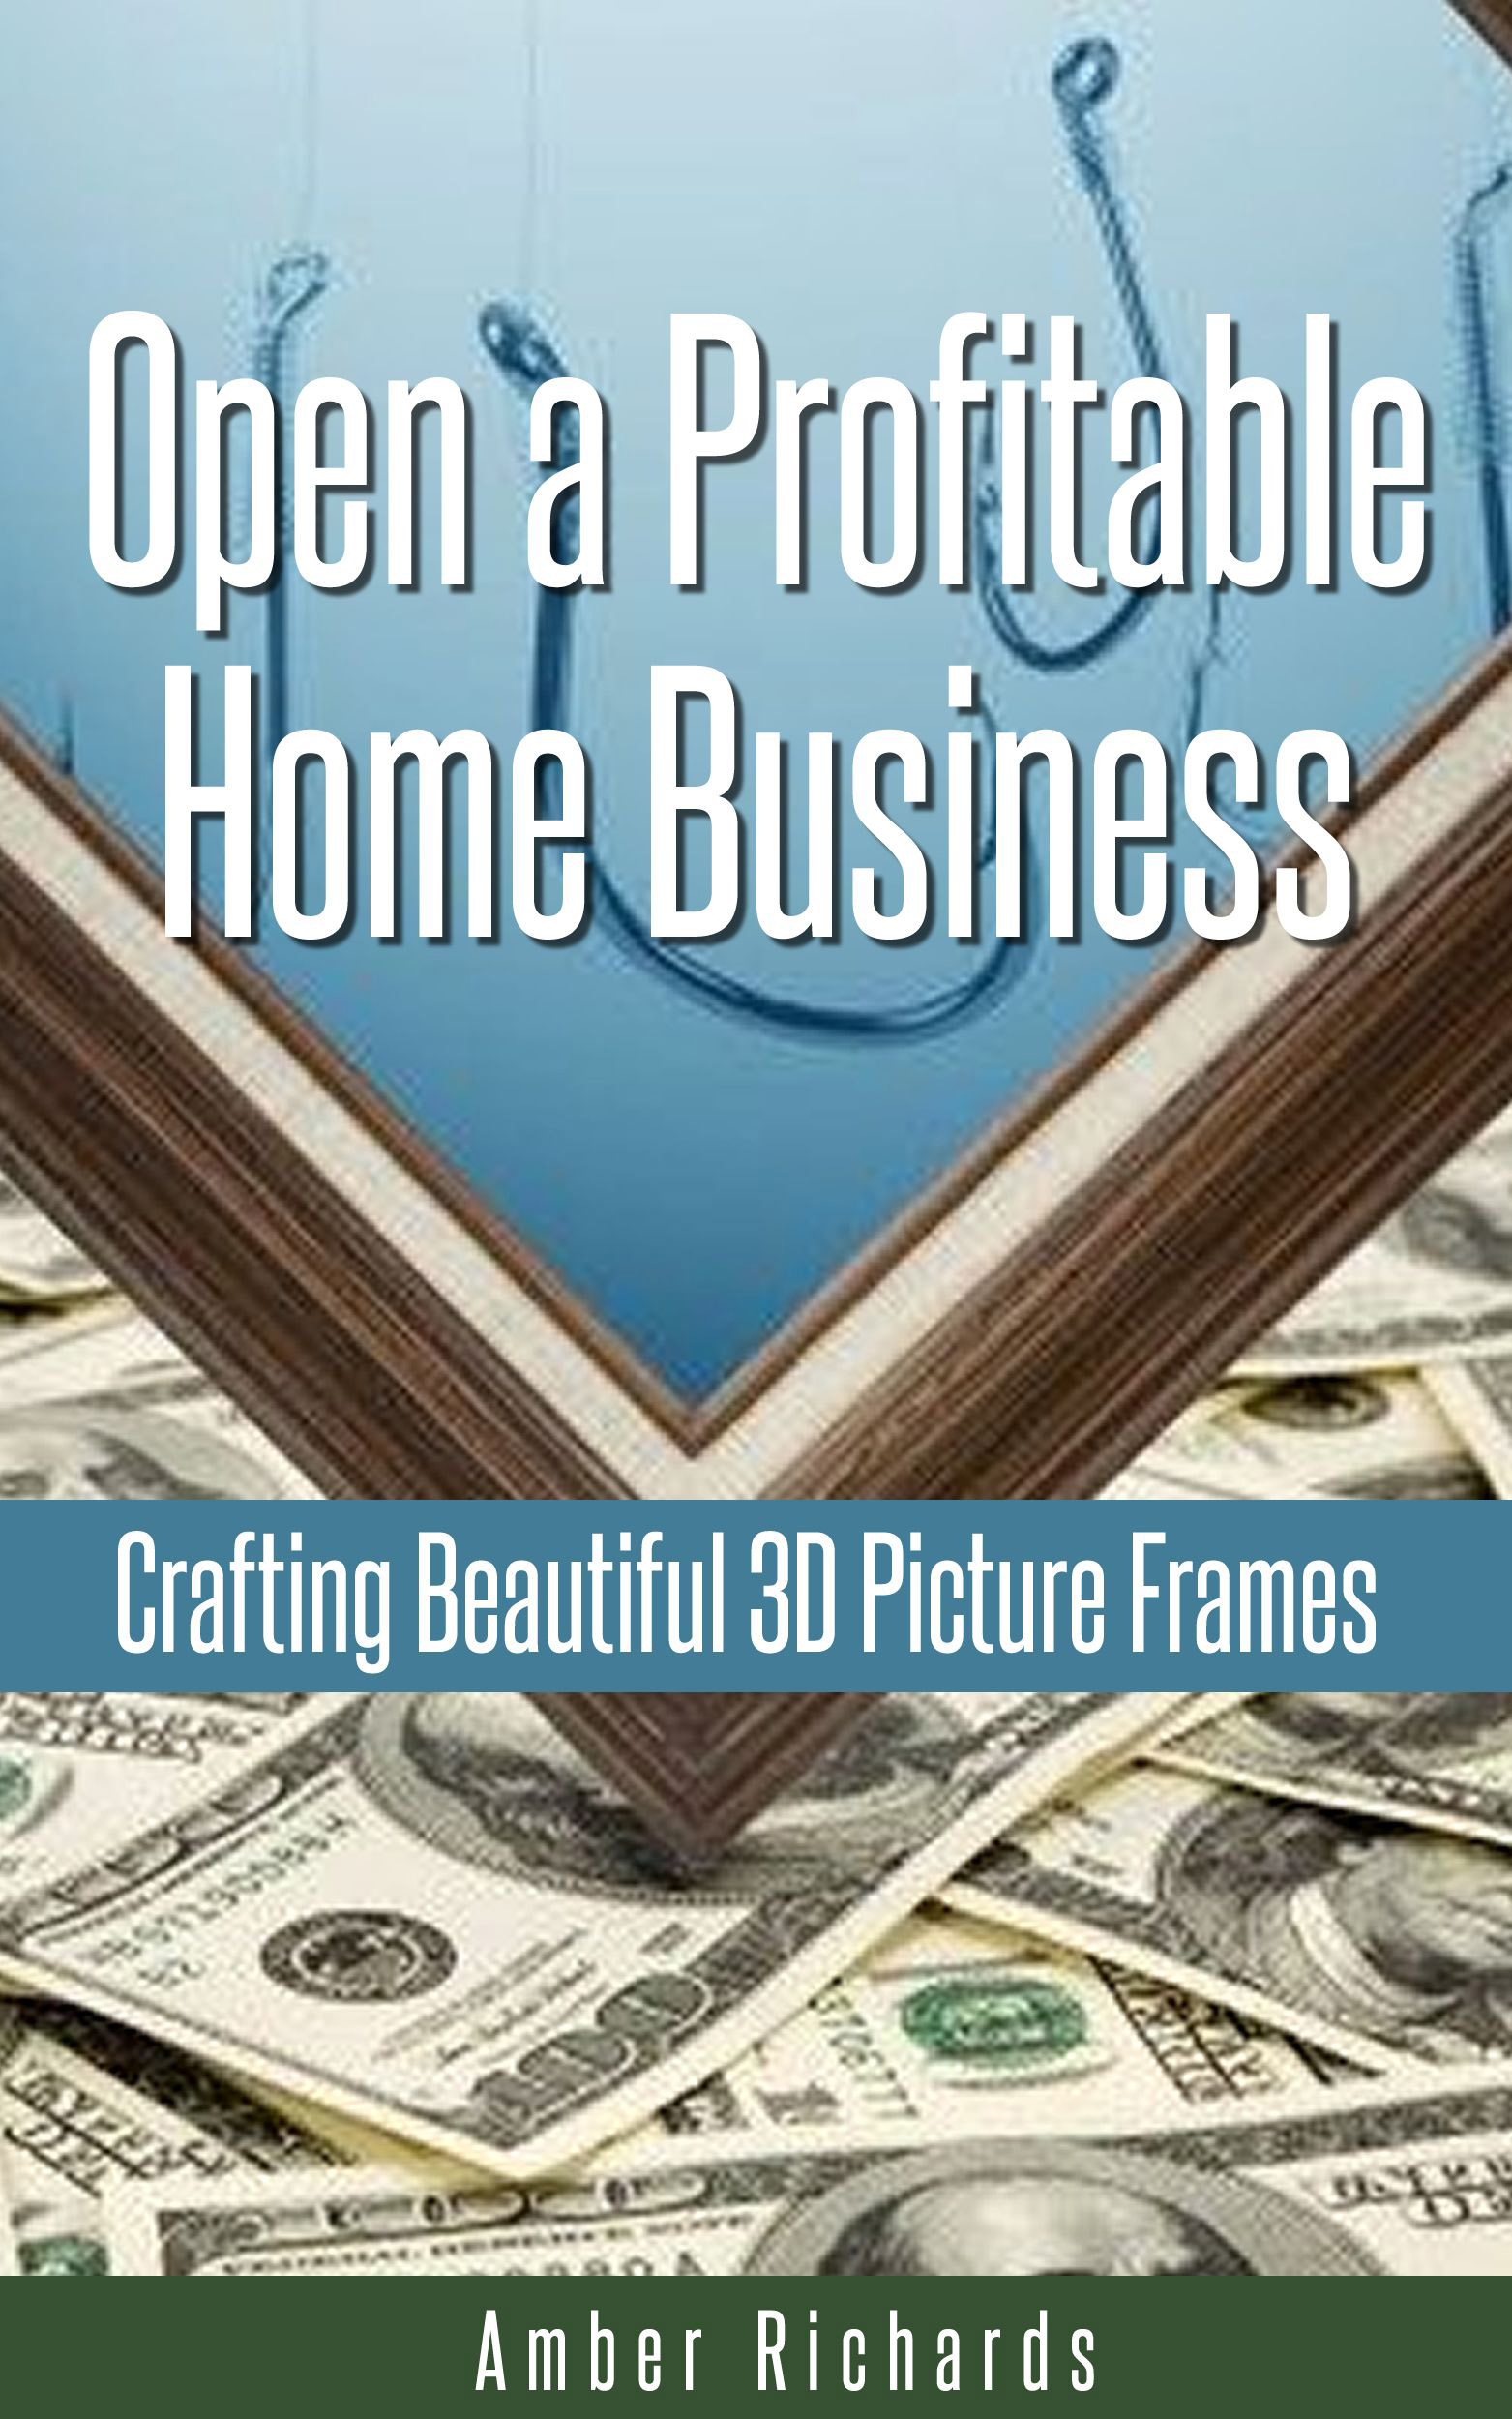 Open a profitable home business crafting beautiful 3d picture frames